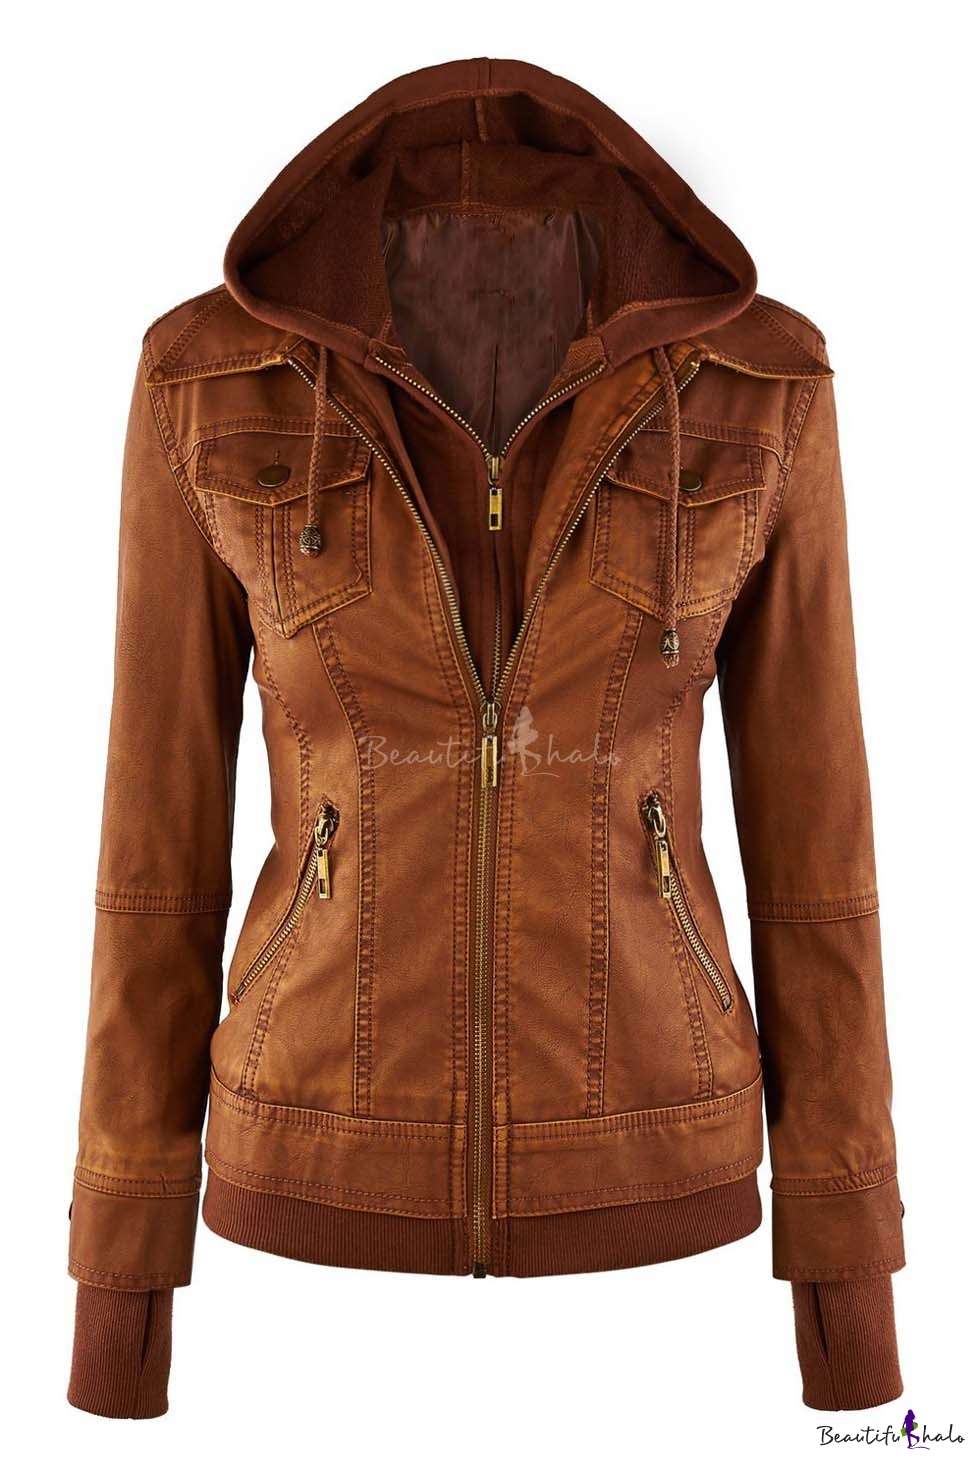 Chaps clothing for women